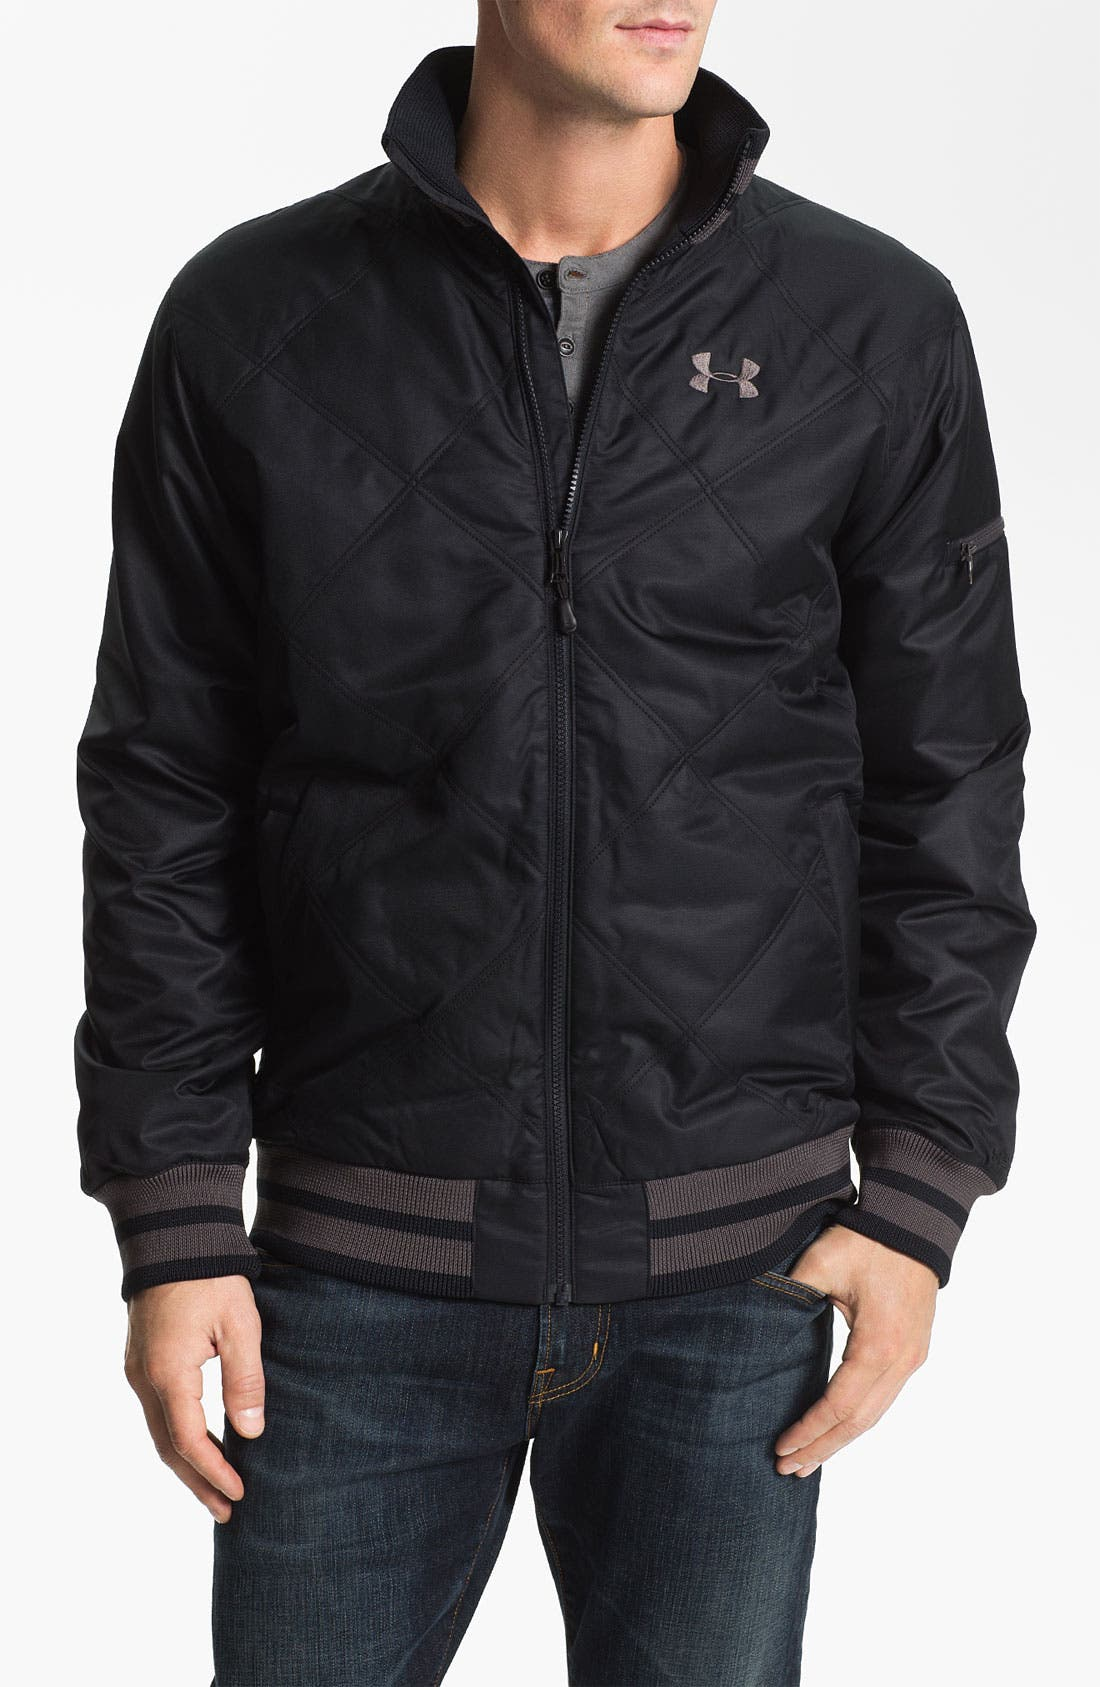 Main Image - Under Armour 'Focus Storm' Jacket